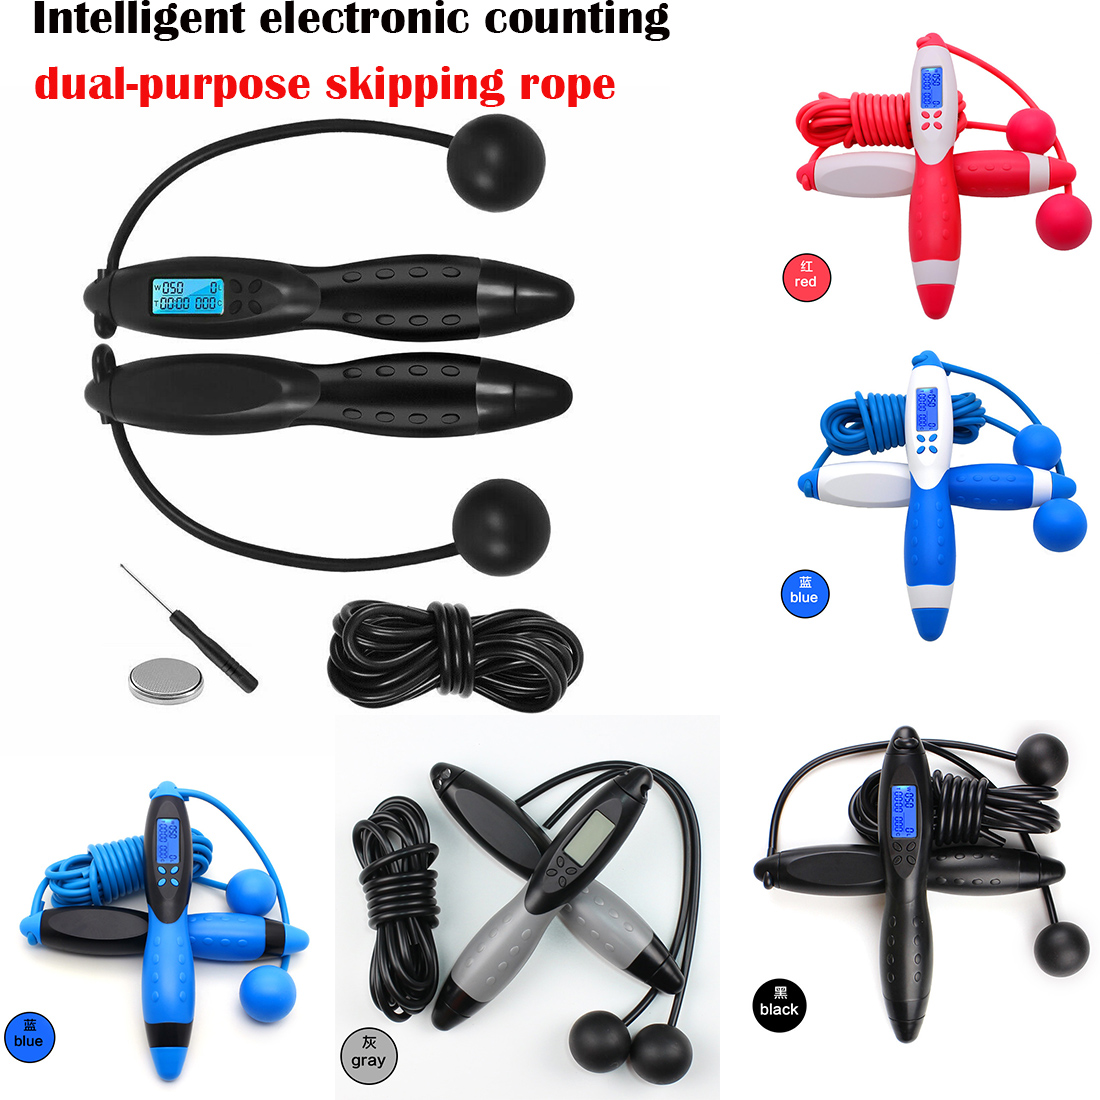 Digital LCD Jump Jumping Skipping Ropes Calorie Count Counter Timer Gym Fitness